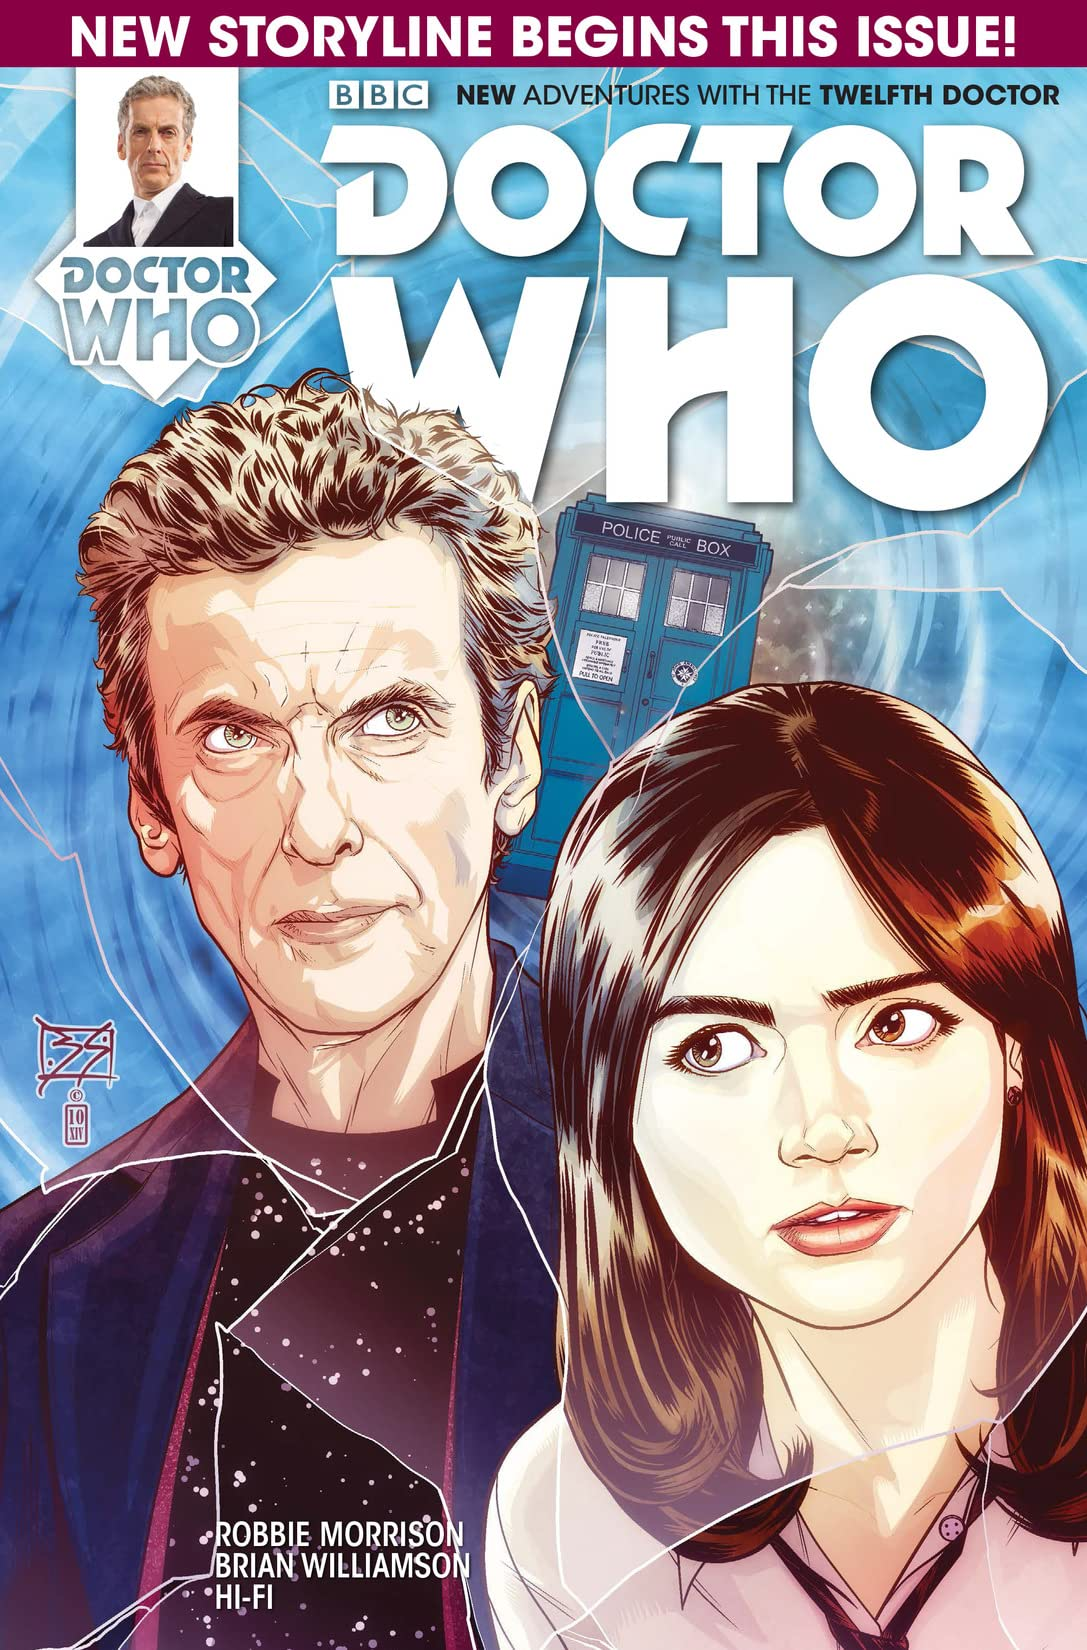 Doctor Who: The Twelfth Doctor #6